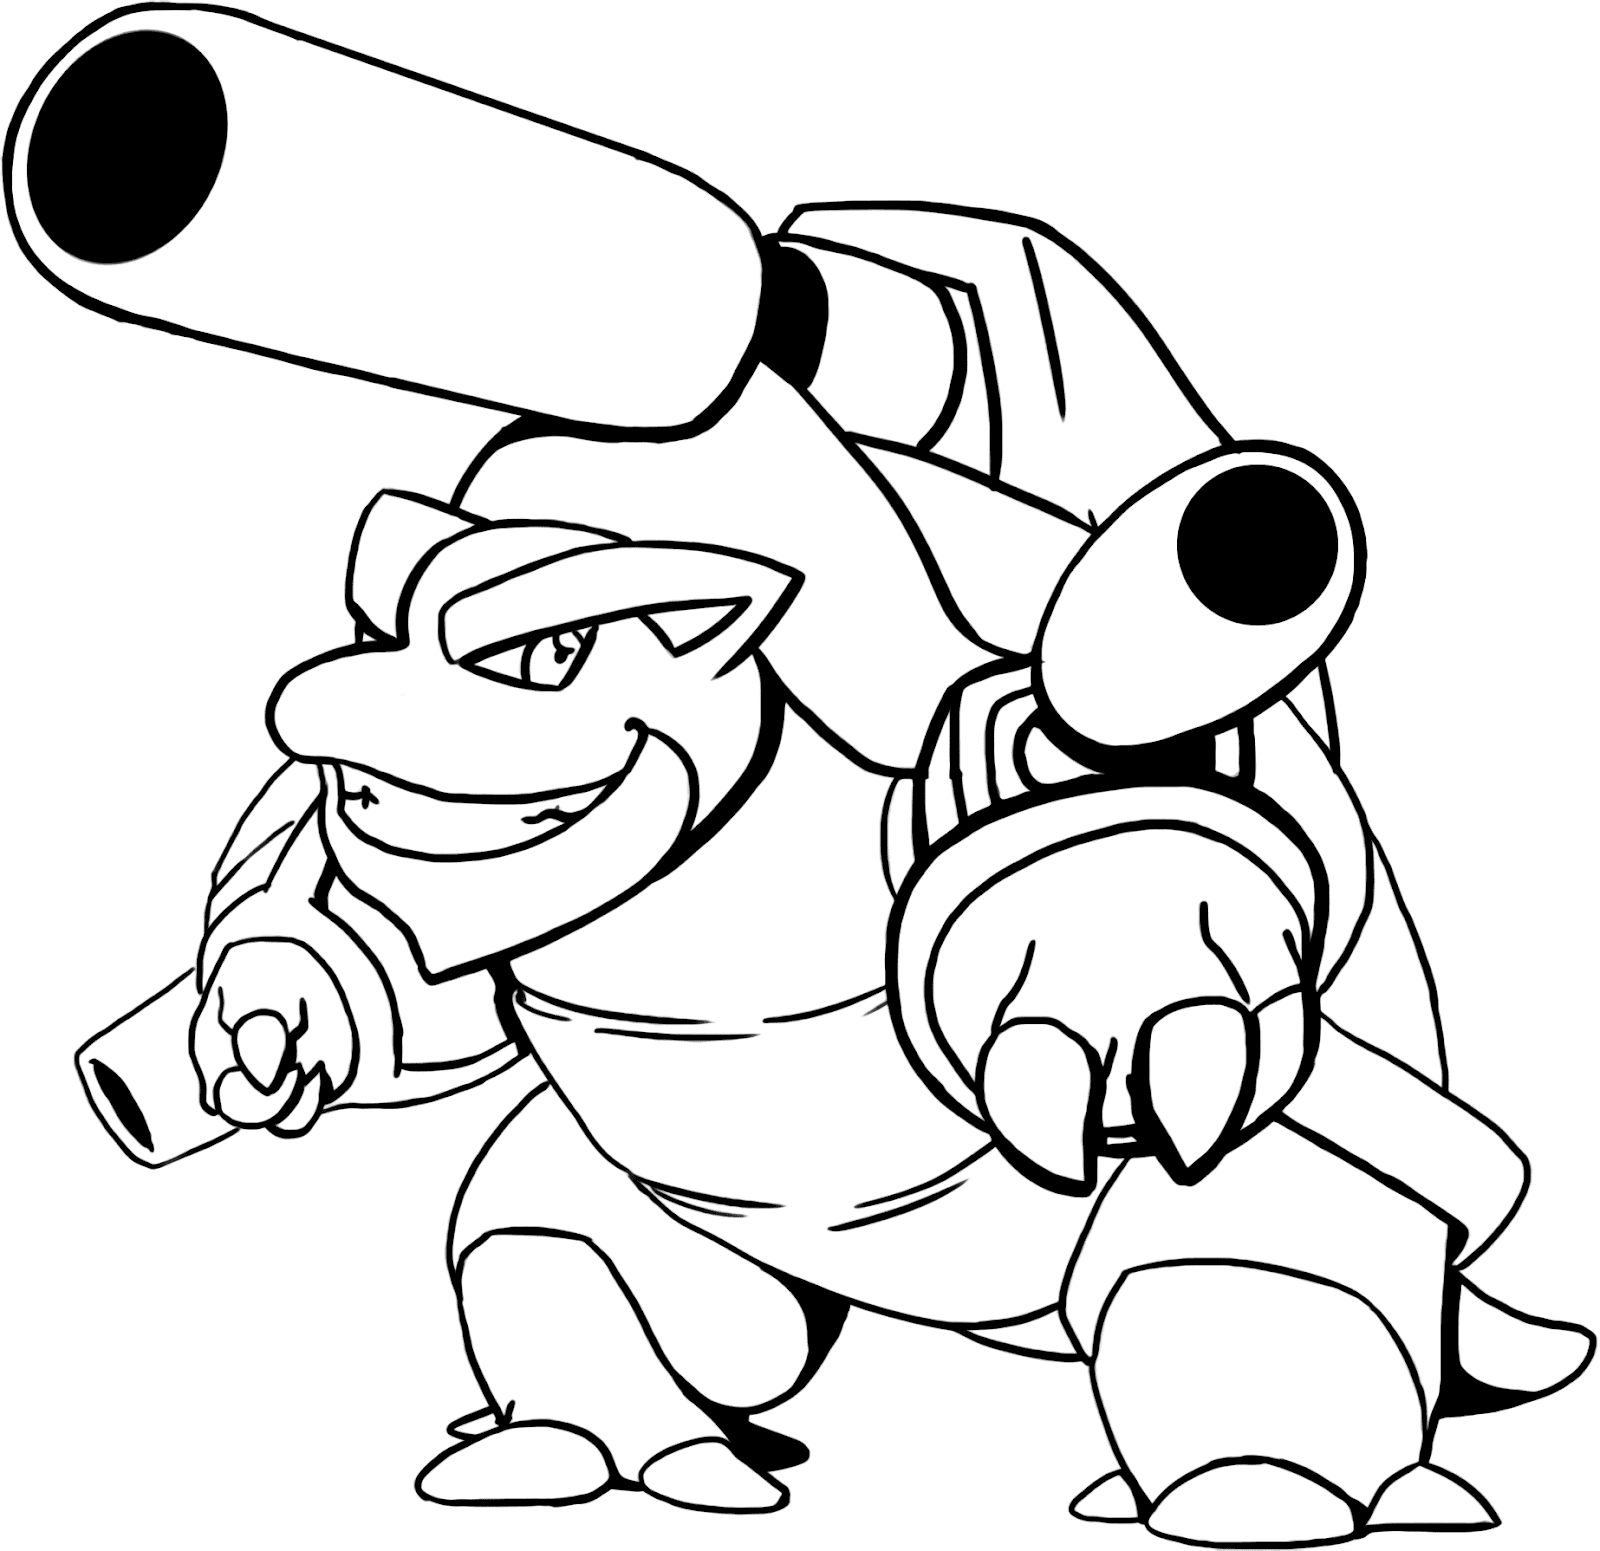 free blastoise coloring pages collection with images